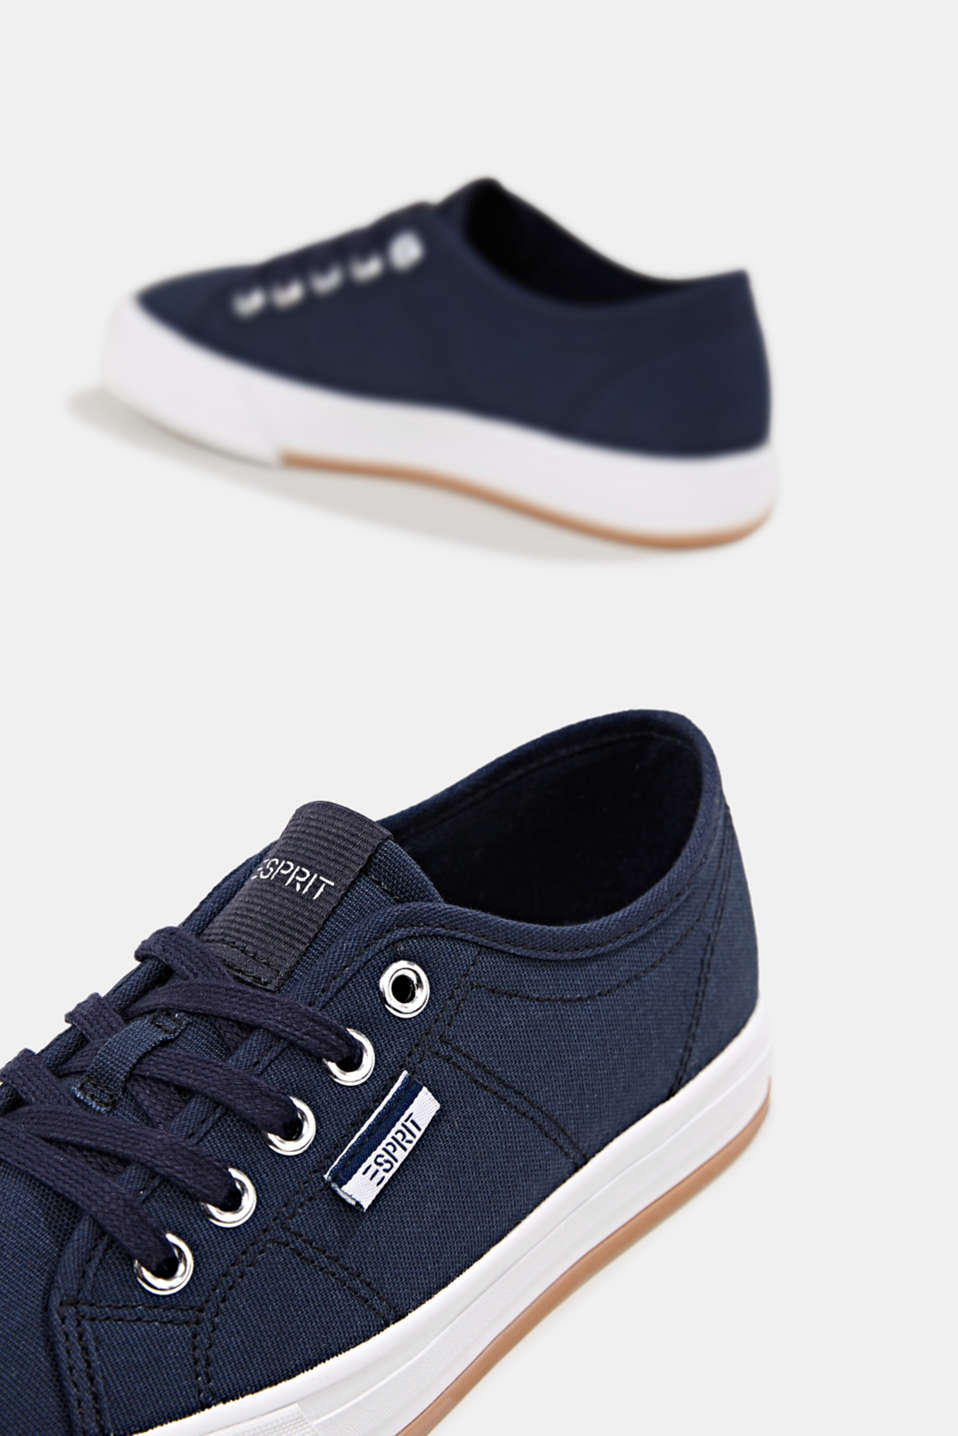 Cotton trainers, NAVY, detail image number 6